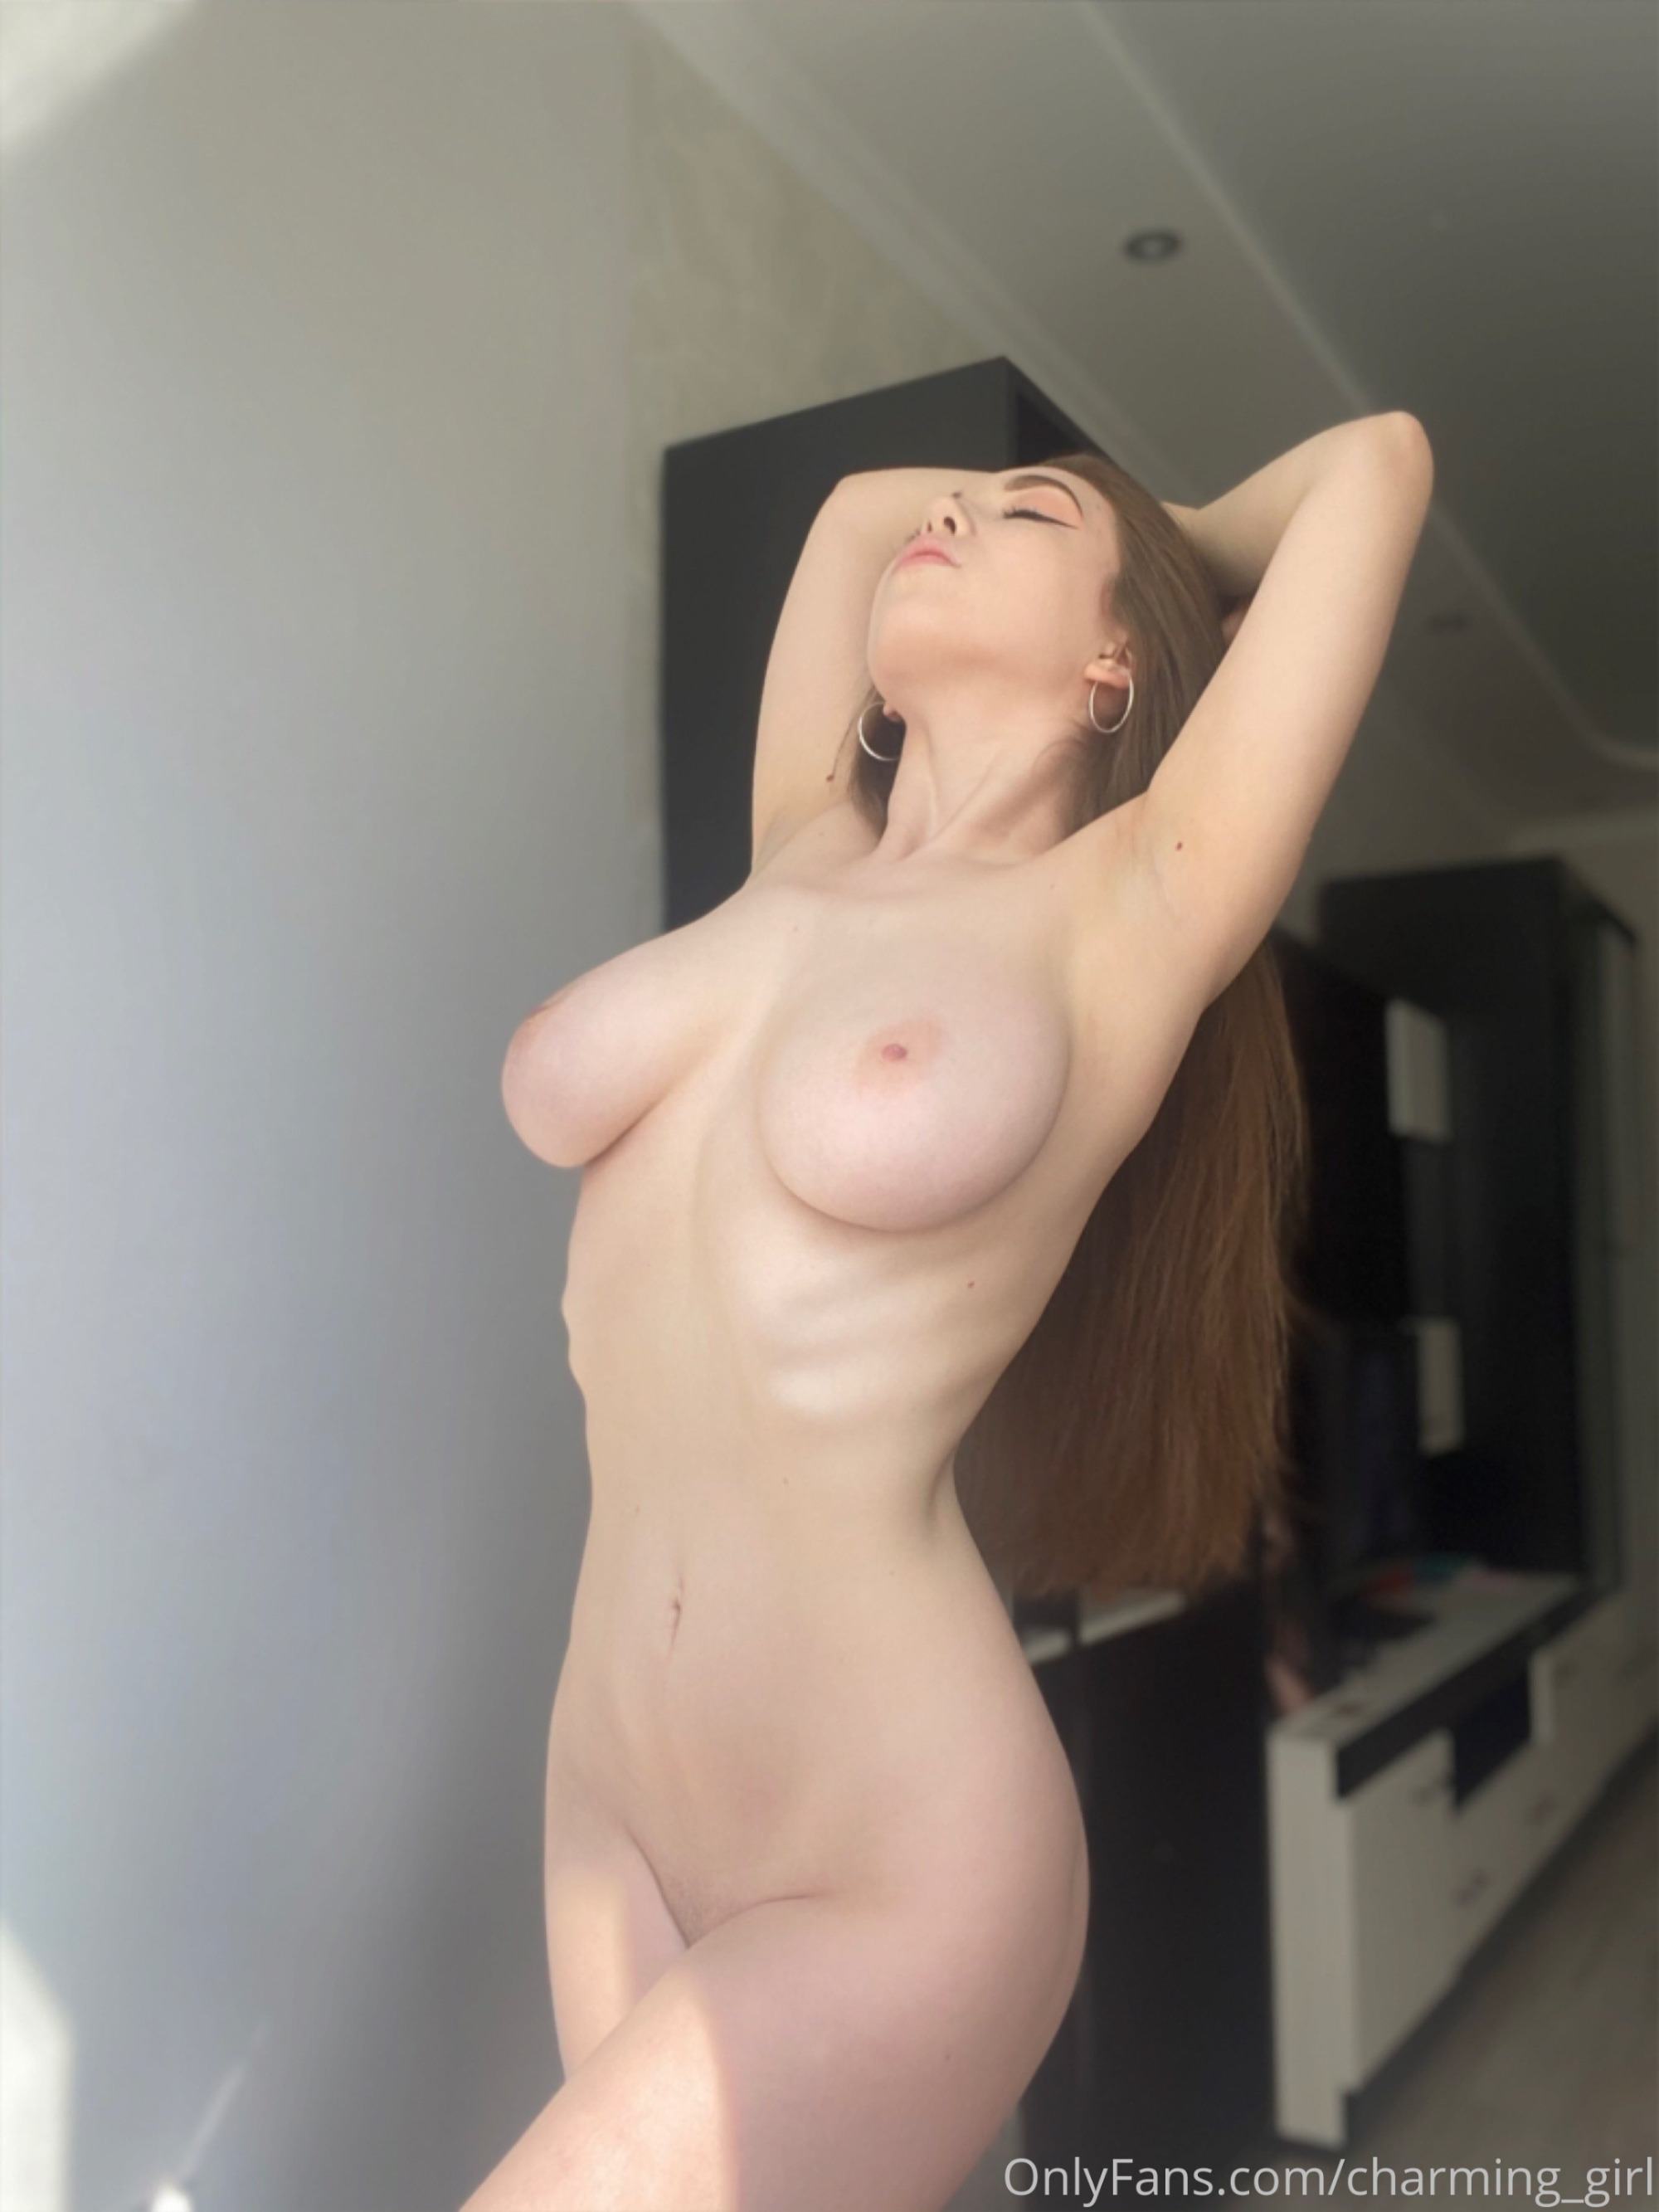 Milana, Charming Girl, Onlyfans 0042